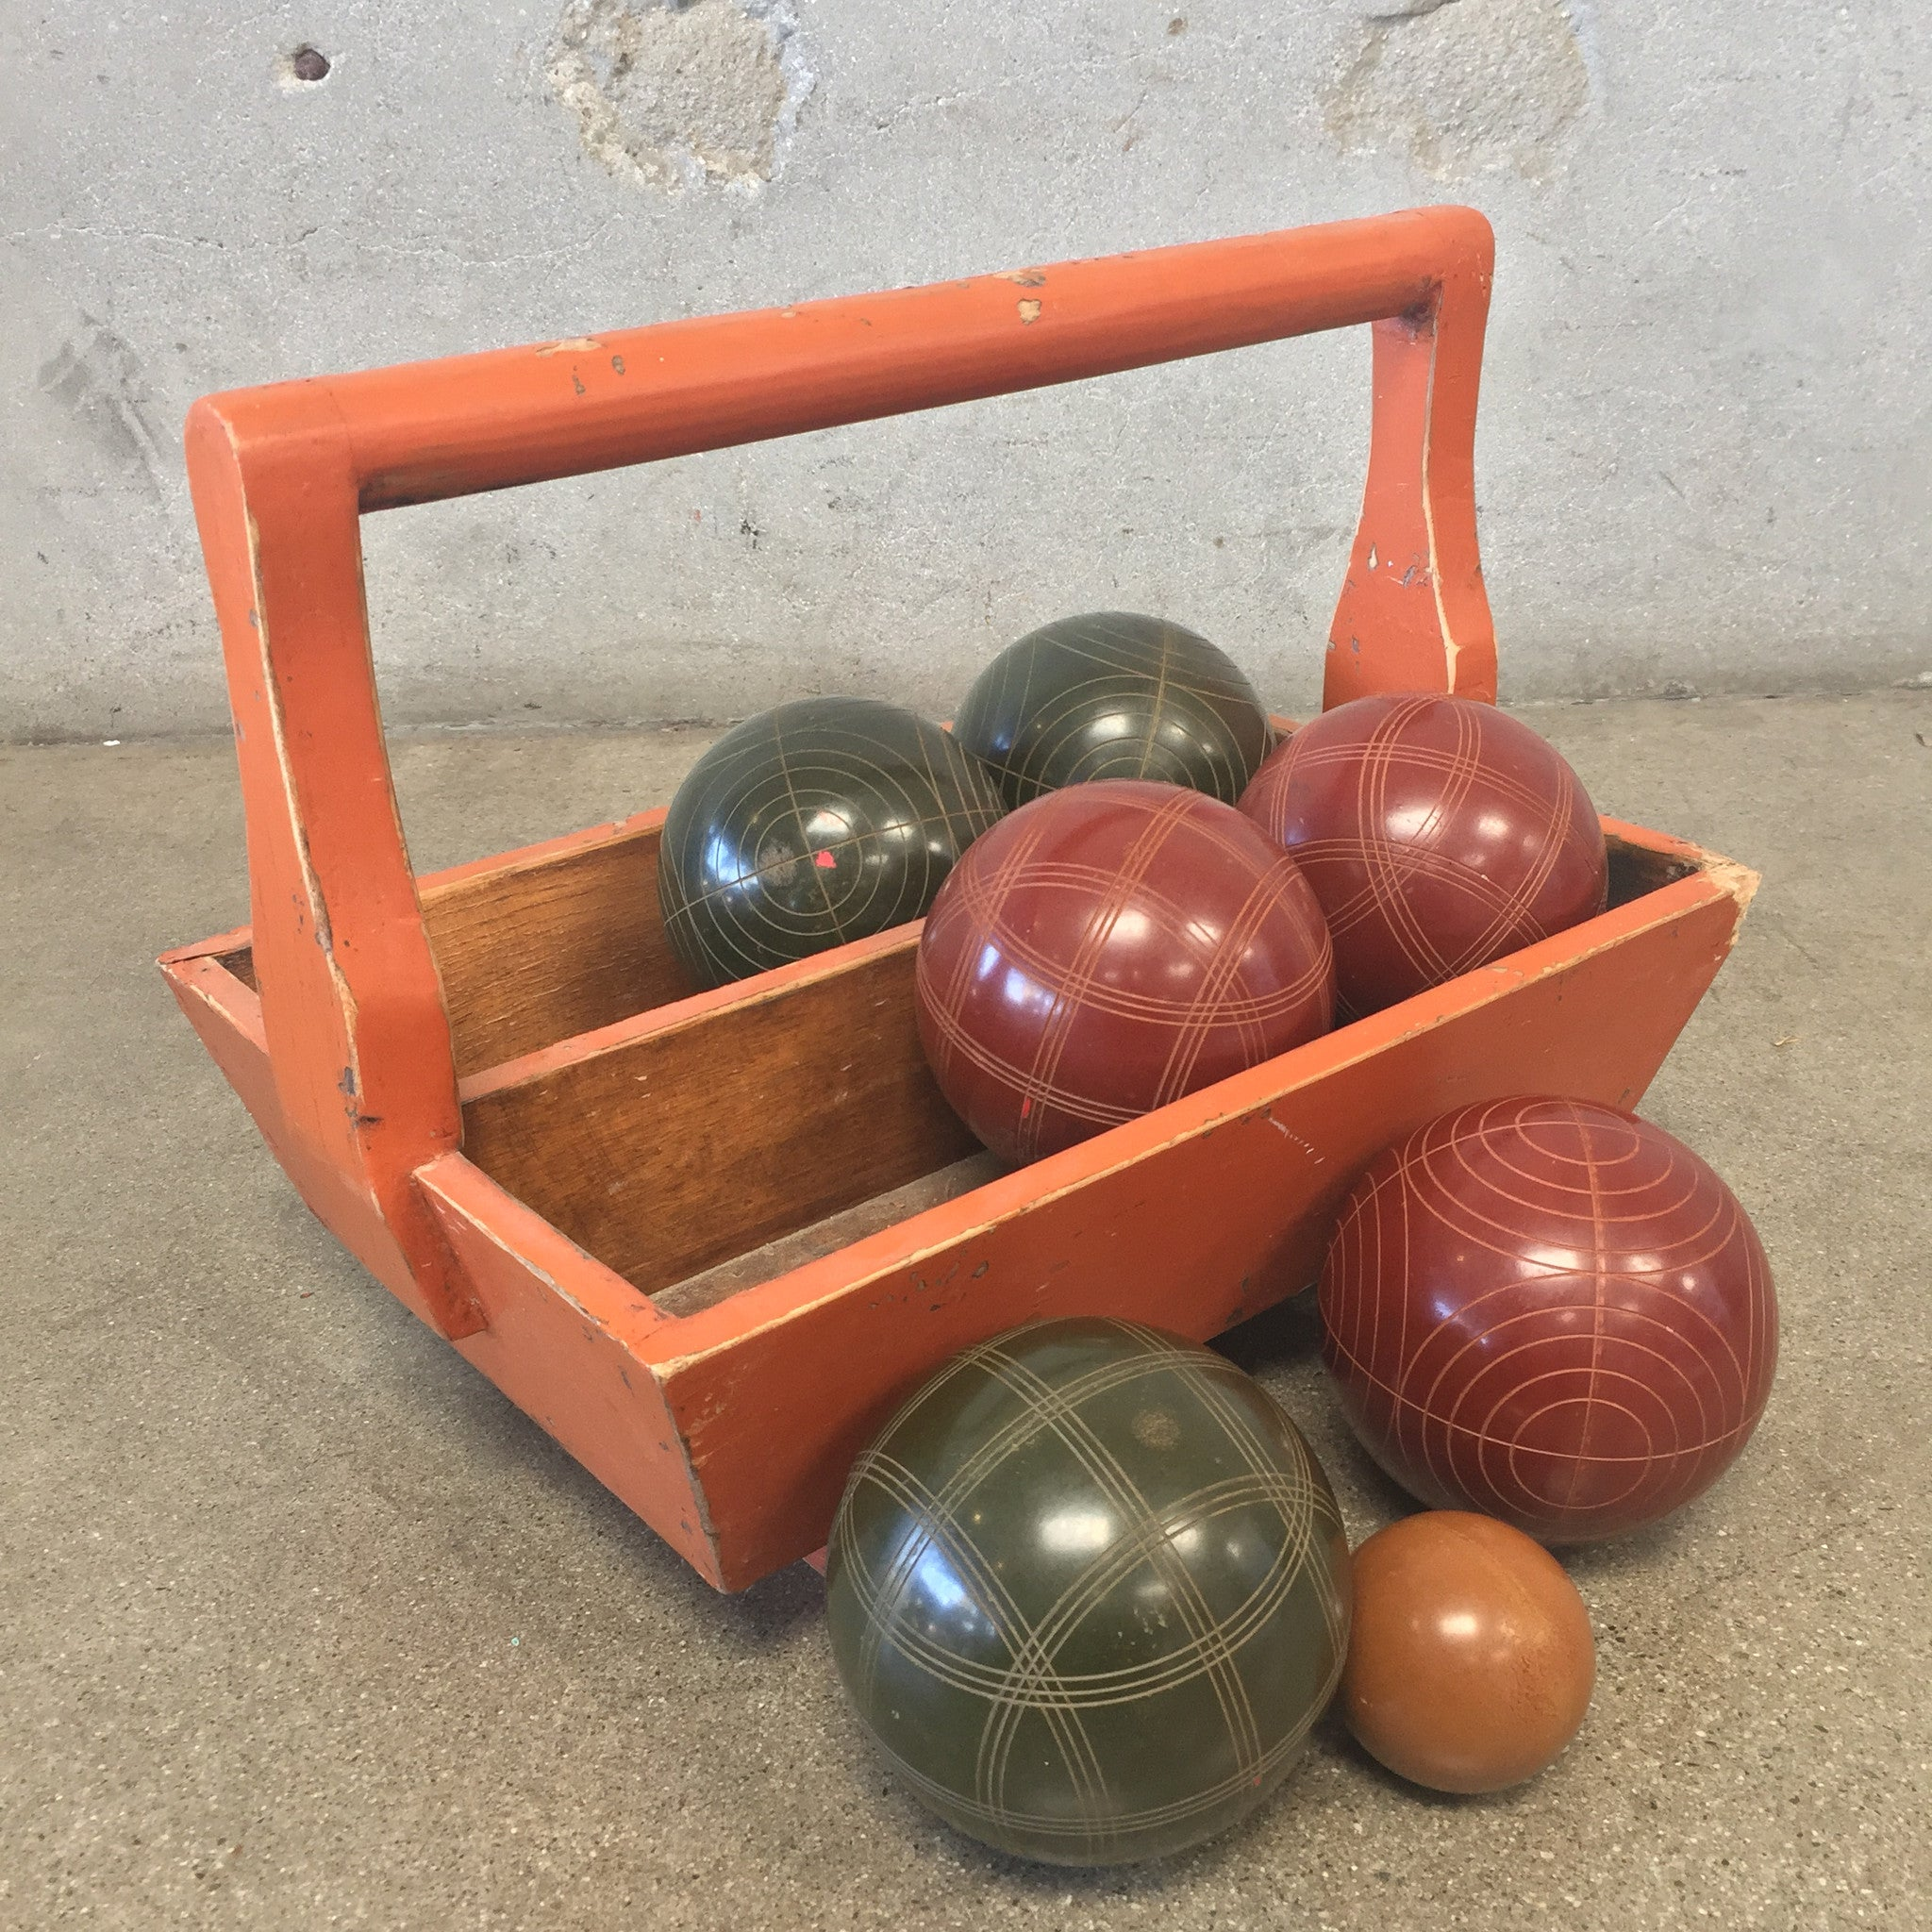 bocce ball set with wood carrier